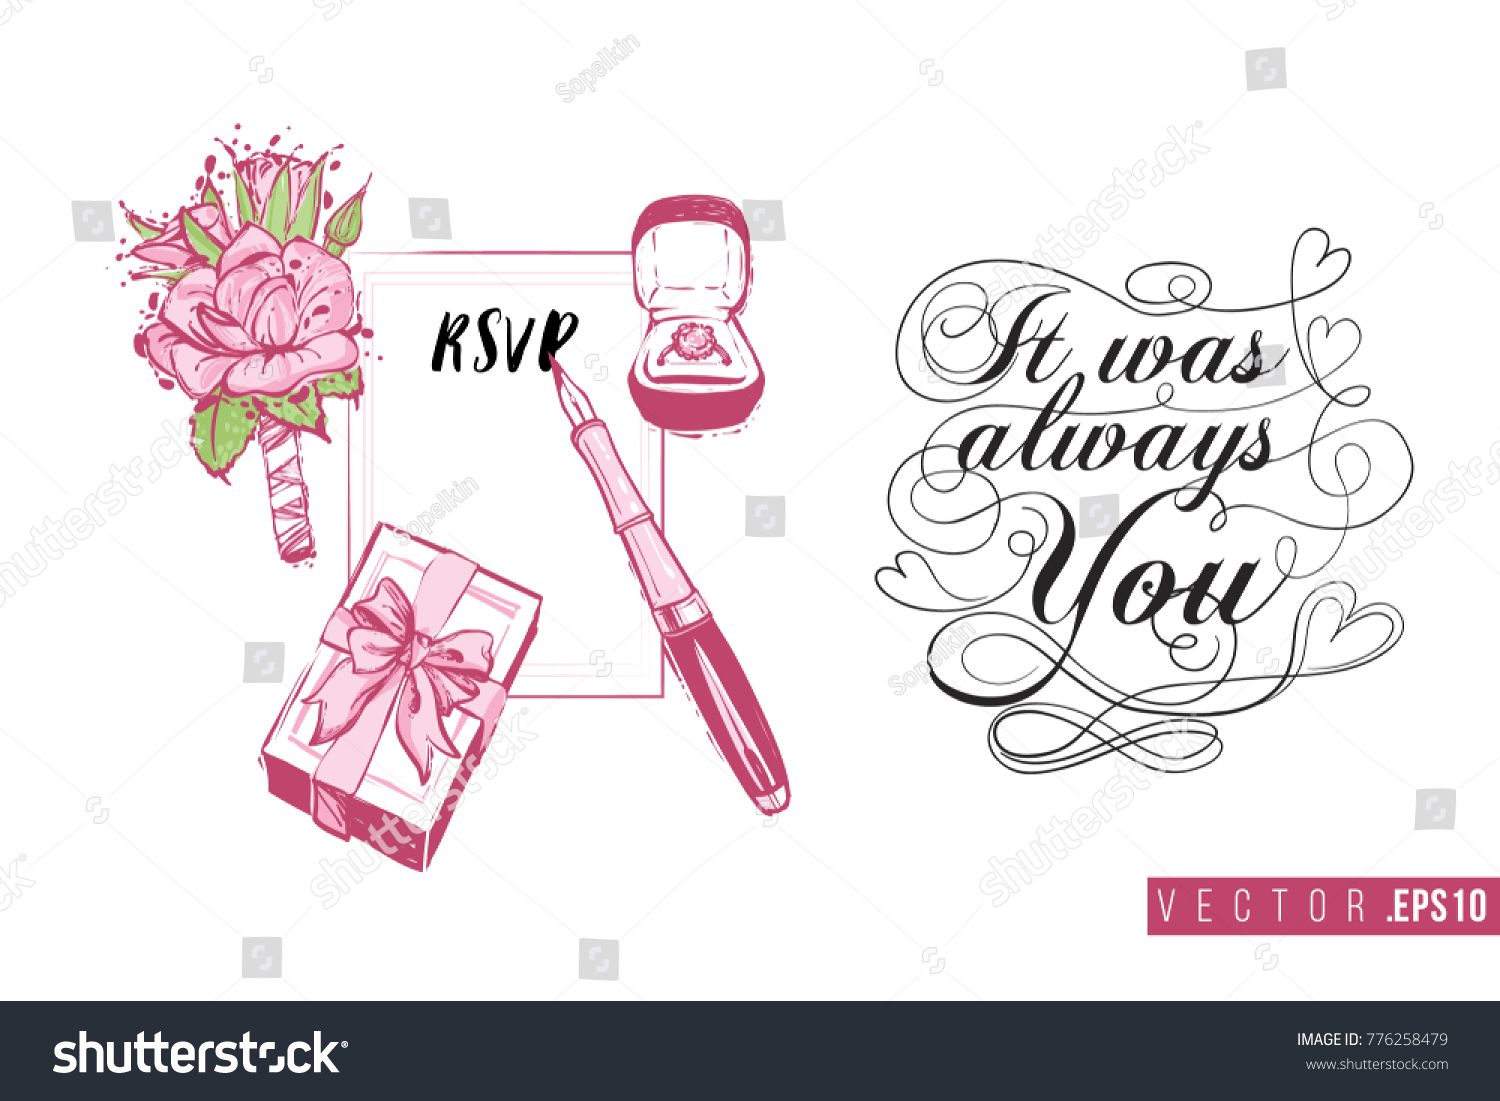 Bridal greeting card marriage accessories text stock vector bridal greeting card with marriage accessories and text it was always you tender pink kristyandbryce Gallery